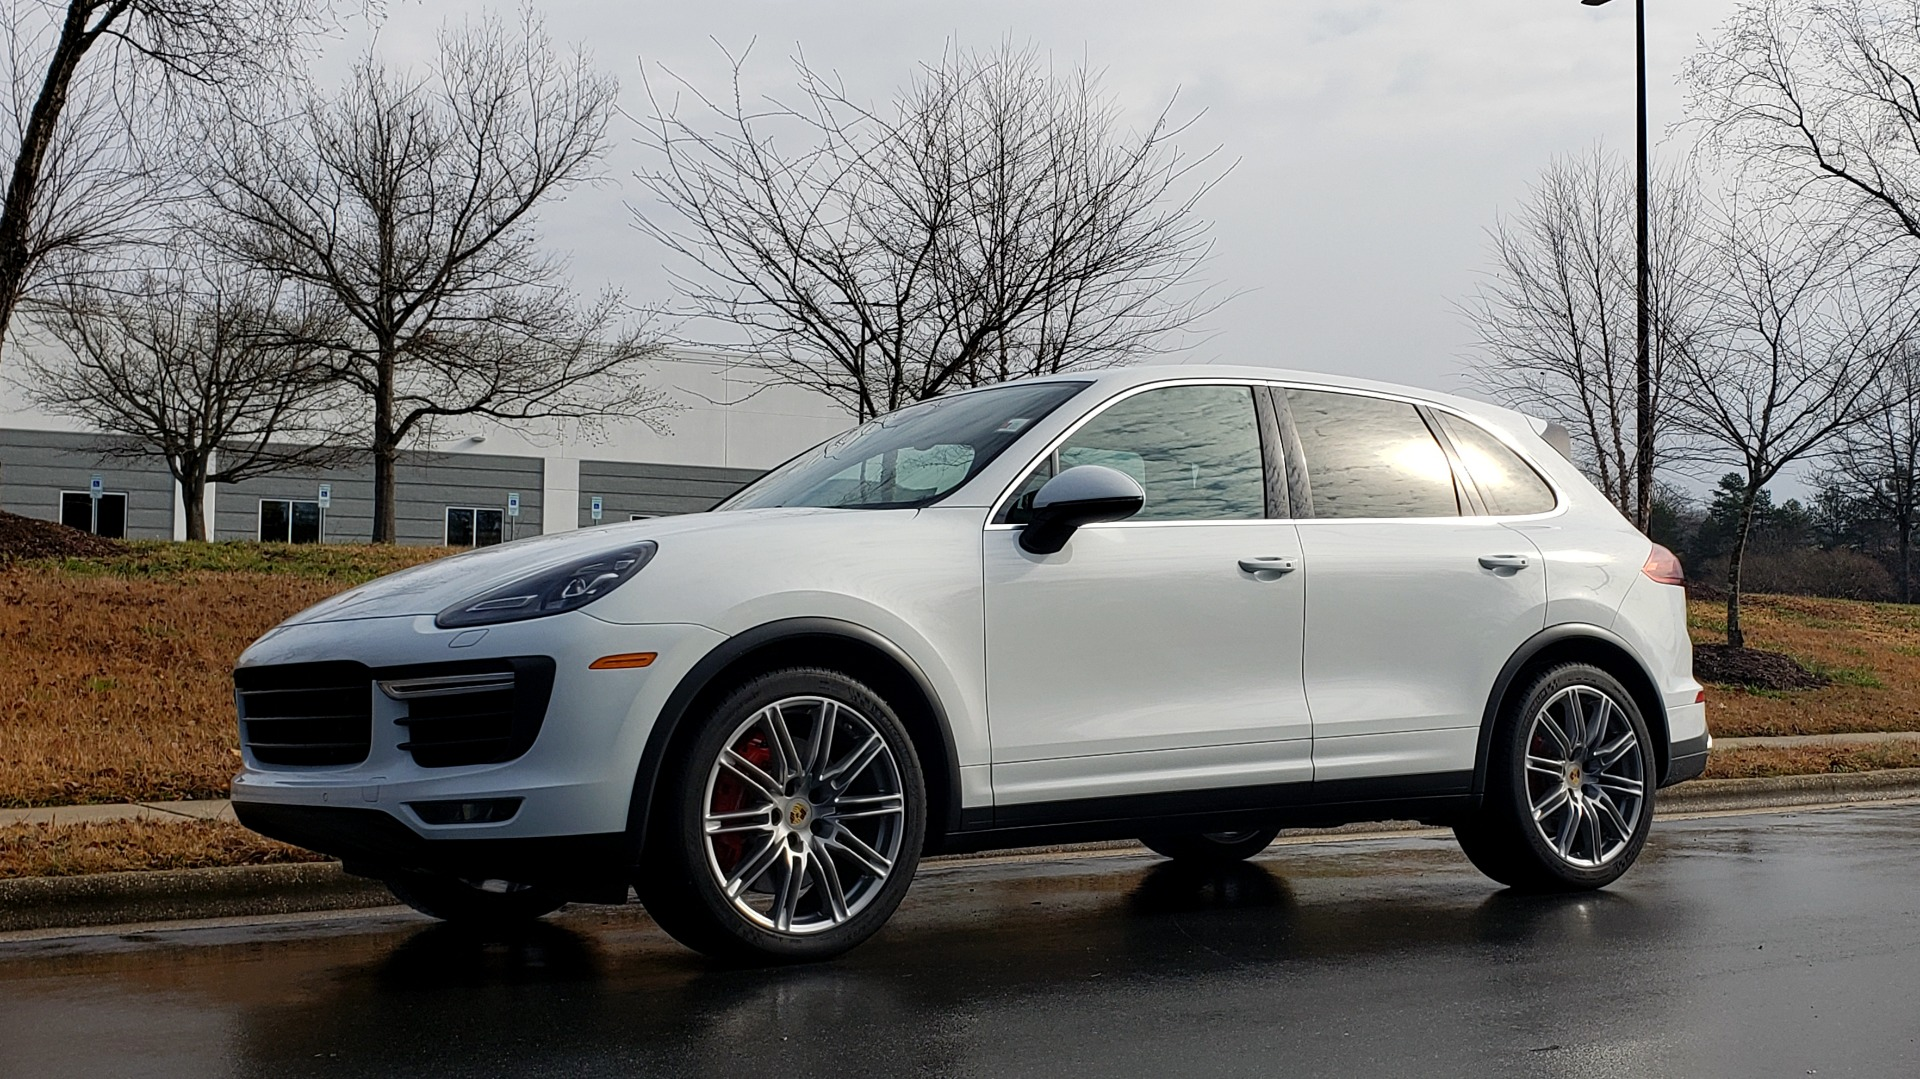 Used 2015 Porsche CAYENNE TURBO V8 / PREMIUM / NAV / SUNROOF / PARK ASSIST / LCA / REARVIEW for sale $47,995 at Formula Imports in Charlotte NC 28227 2